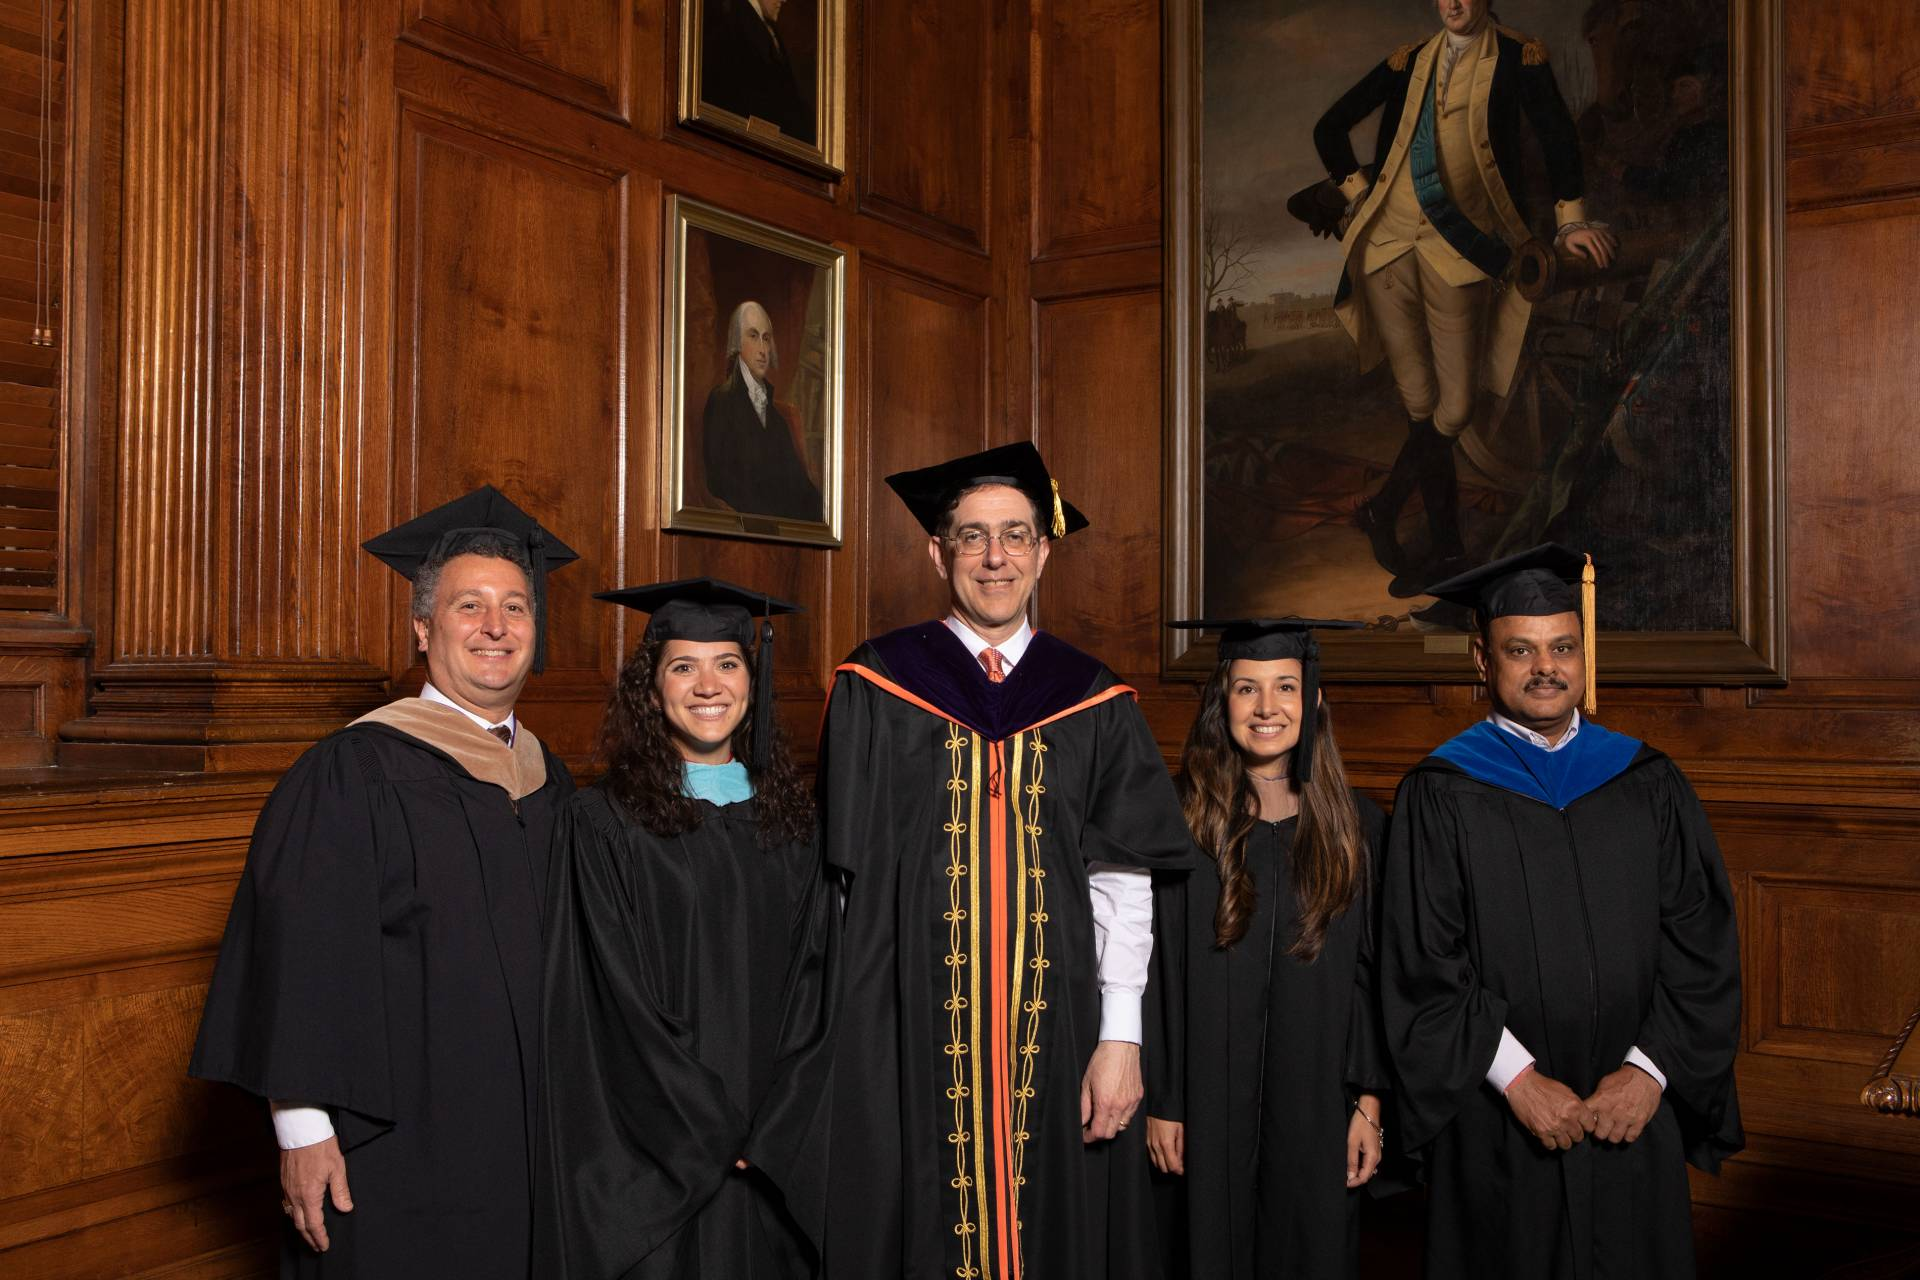 Kevin Killian, Kimberly Dickstein, Petrina Plunkett and Dr. Arun Srivastava pose with Christopher L. Eisgruber in ceremonial black gowns and mortarboards